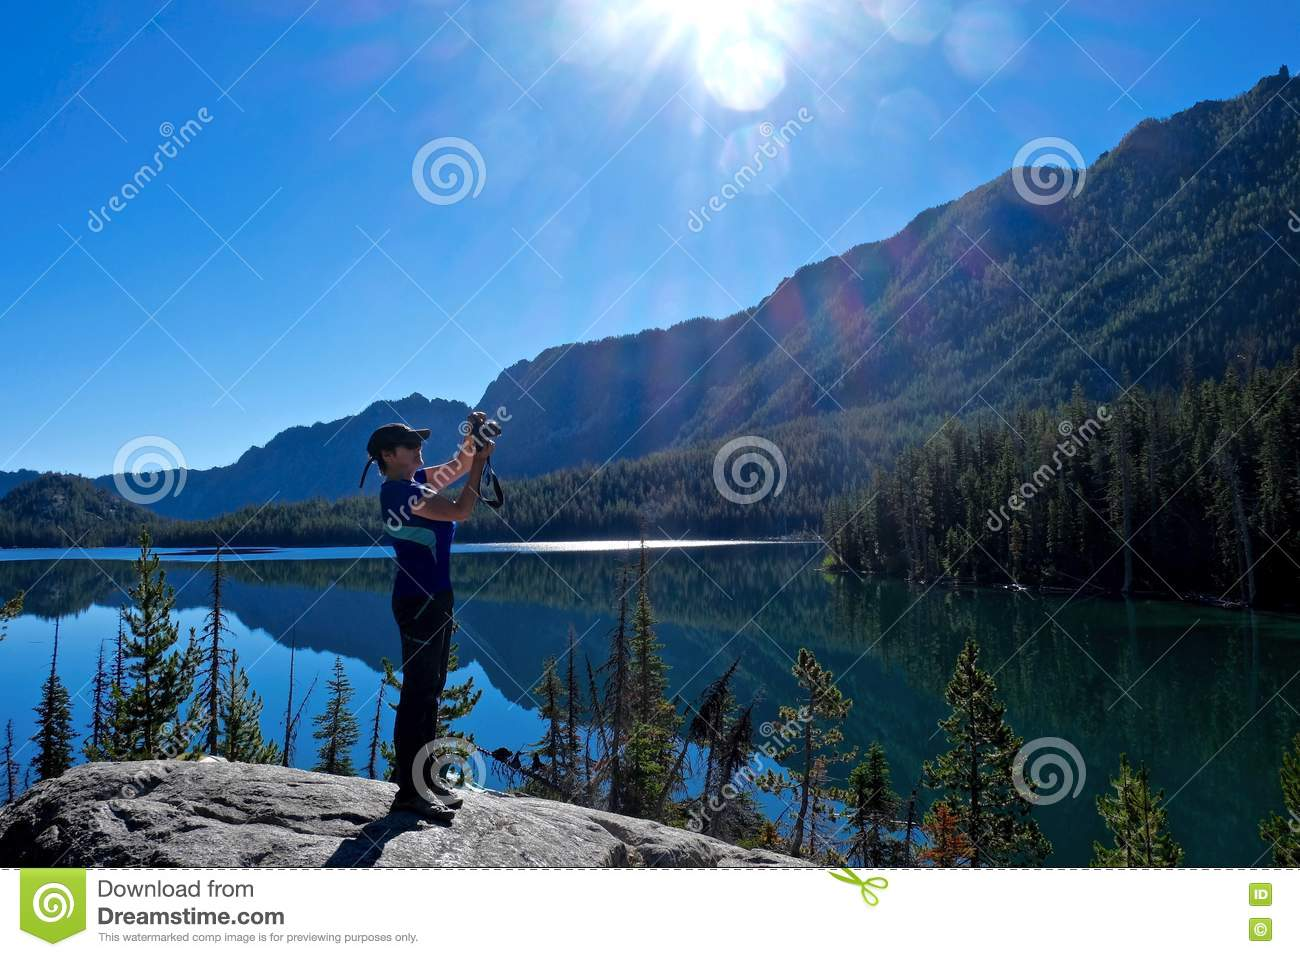 Woman photographer by alpine lake with reflection in calm water.